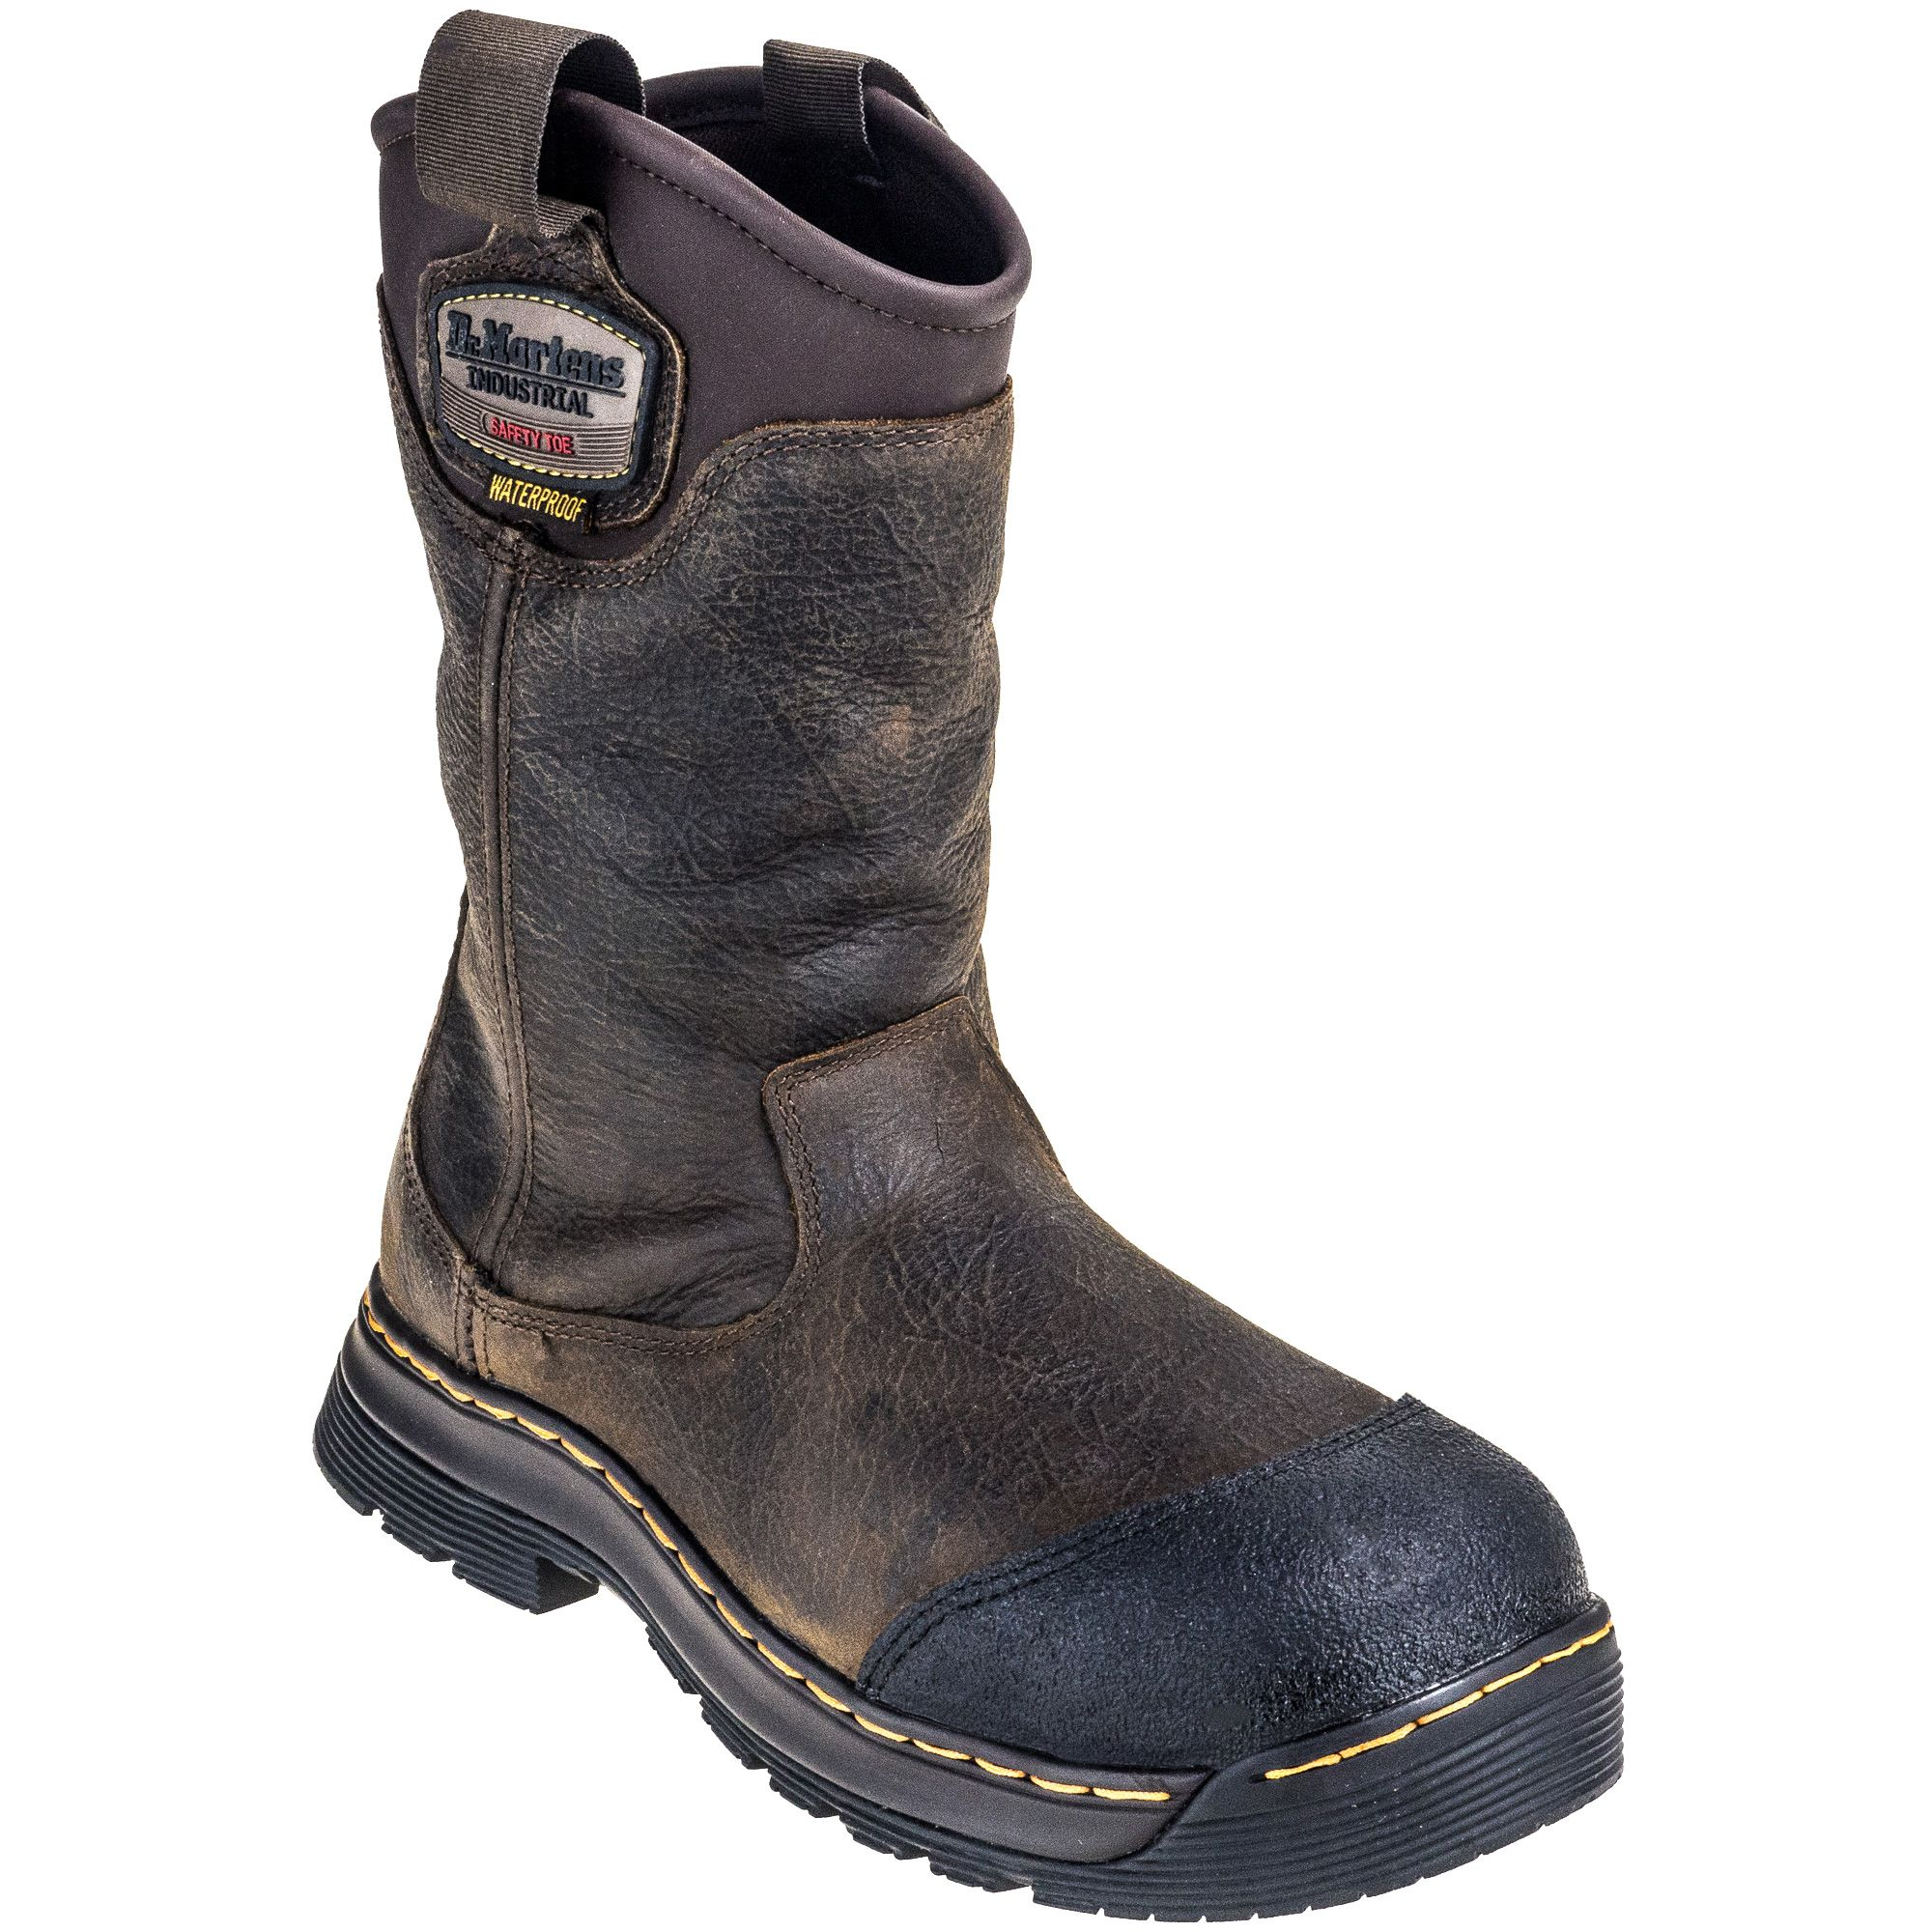 footwear toe comforter boot images extralarge duty rocky most boots composite mens comfortable